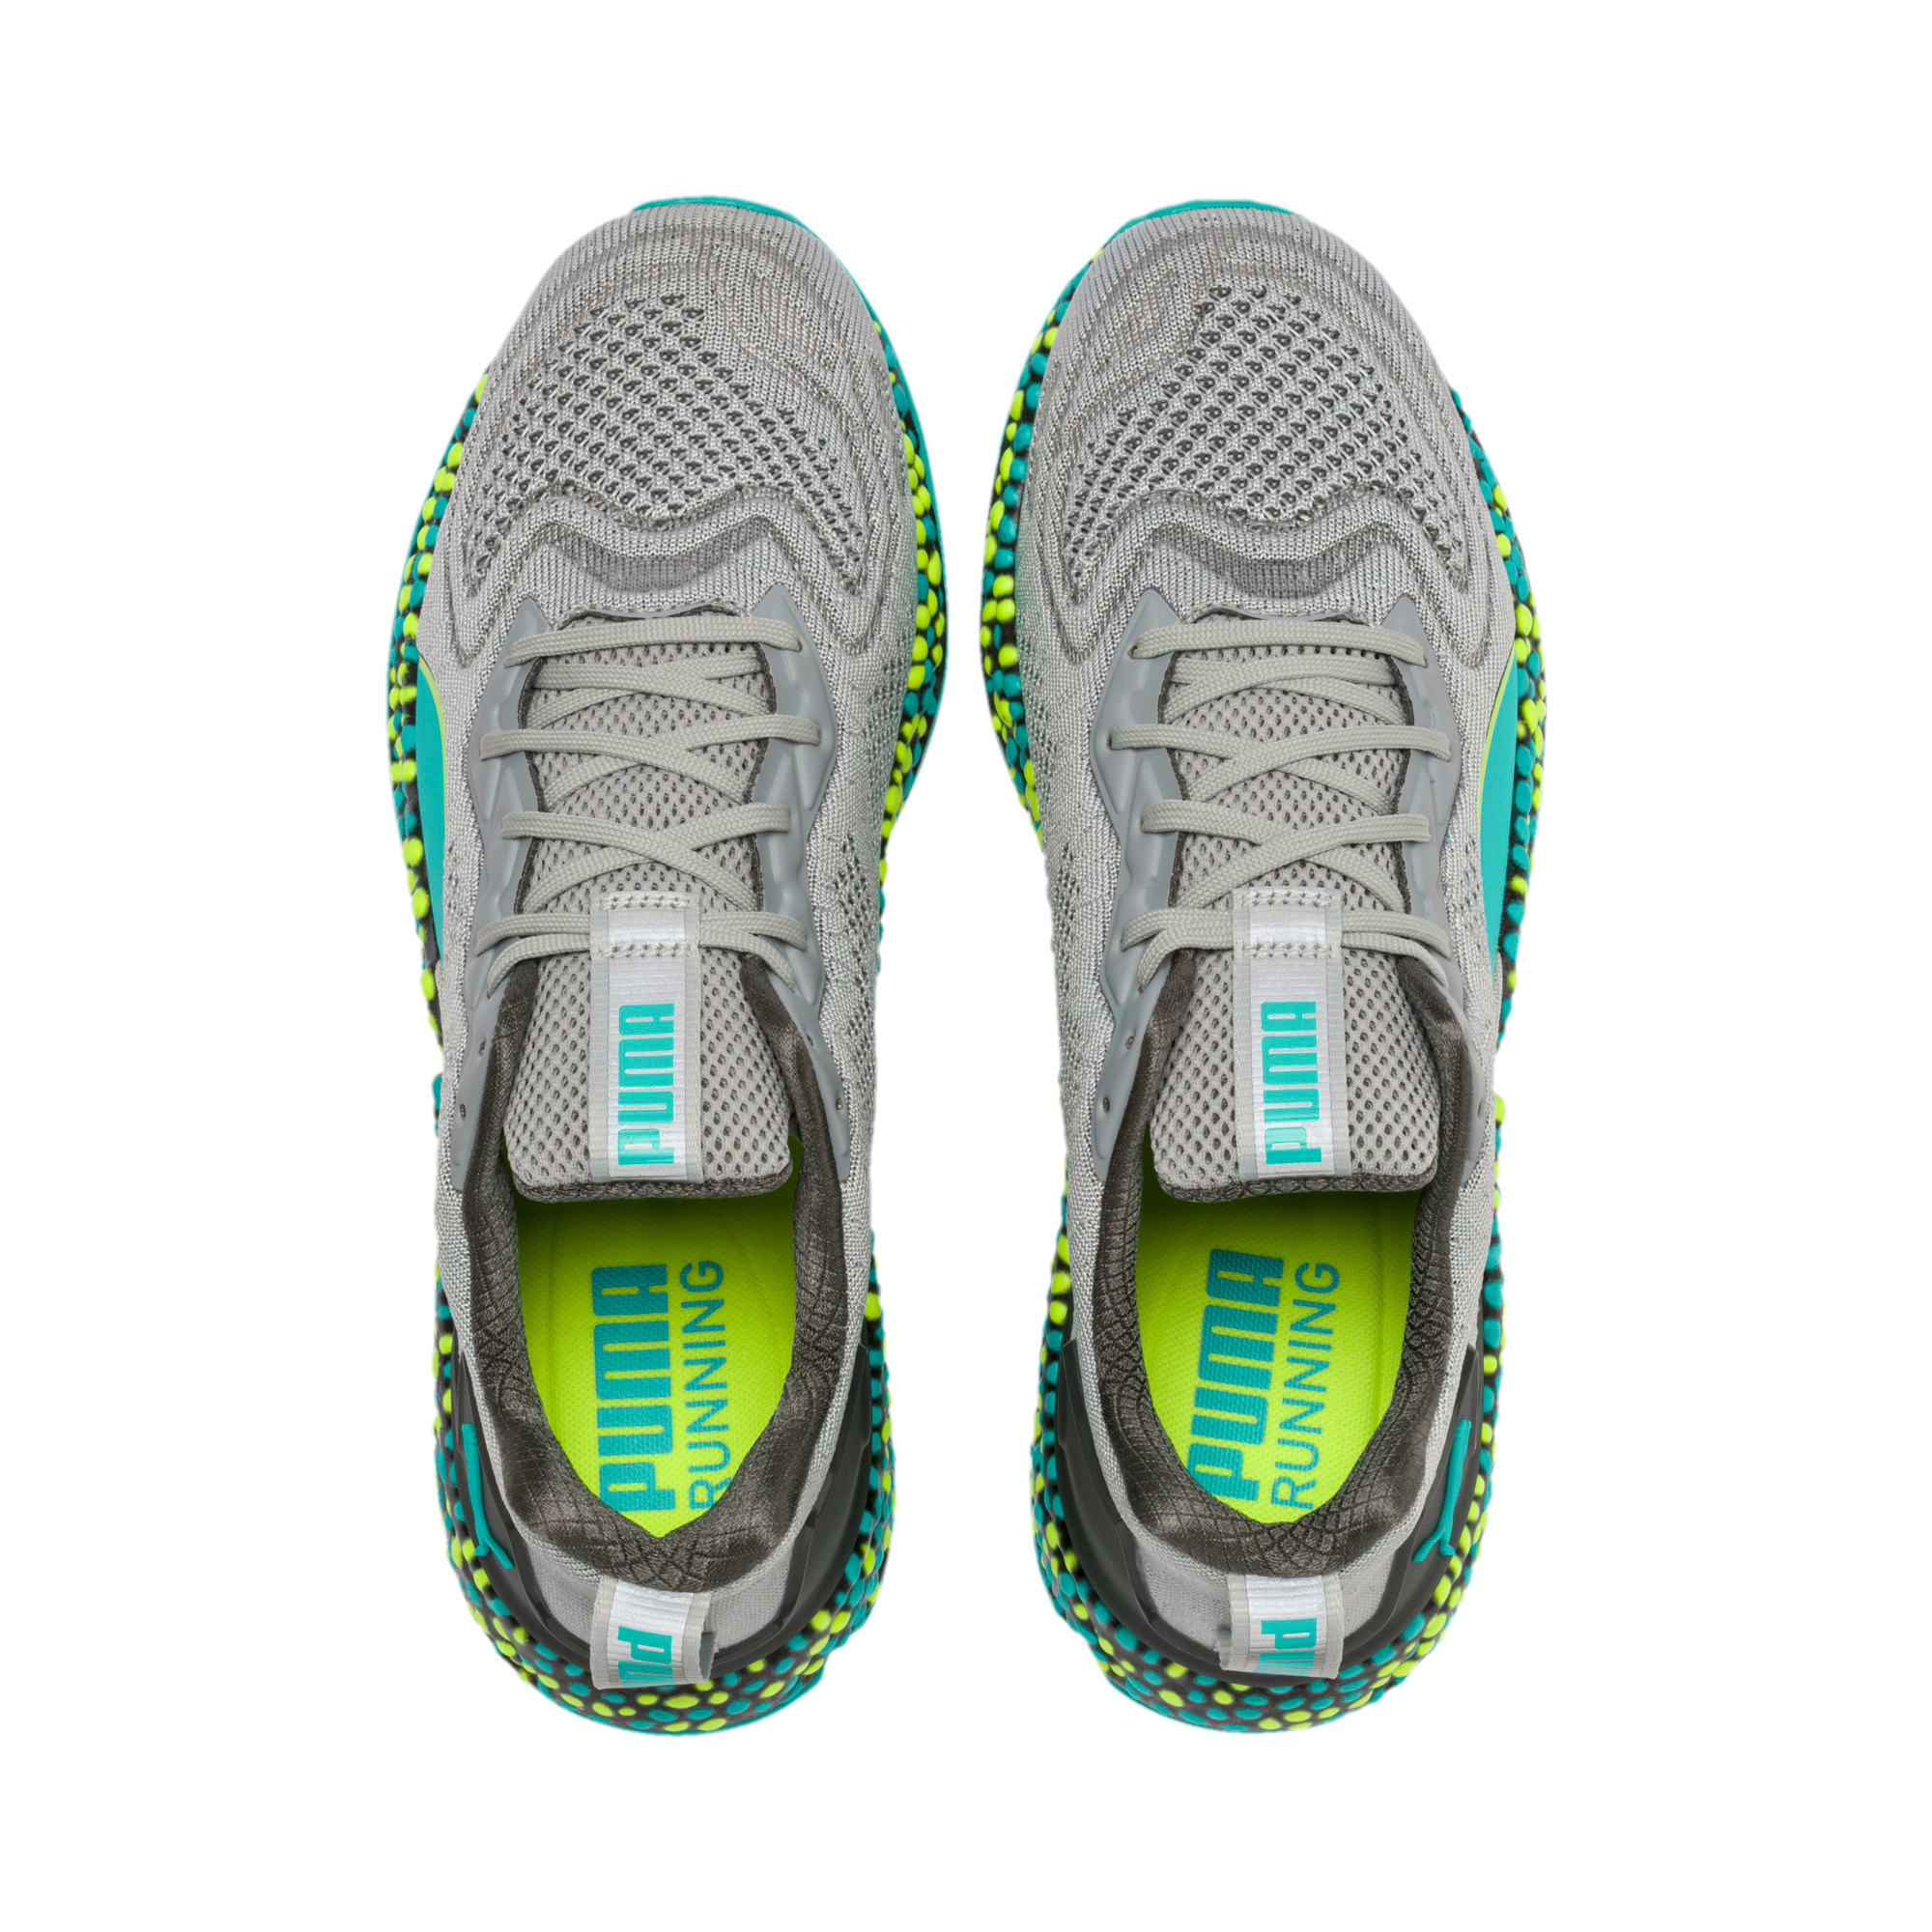 Thumbnail 7 of SPEED Orbiter Men's Running Shoes, High Rise-Blue Turquoise, medium